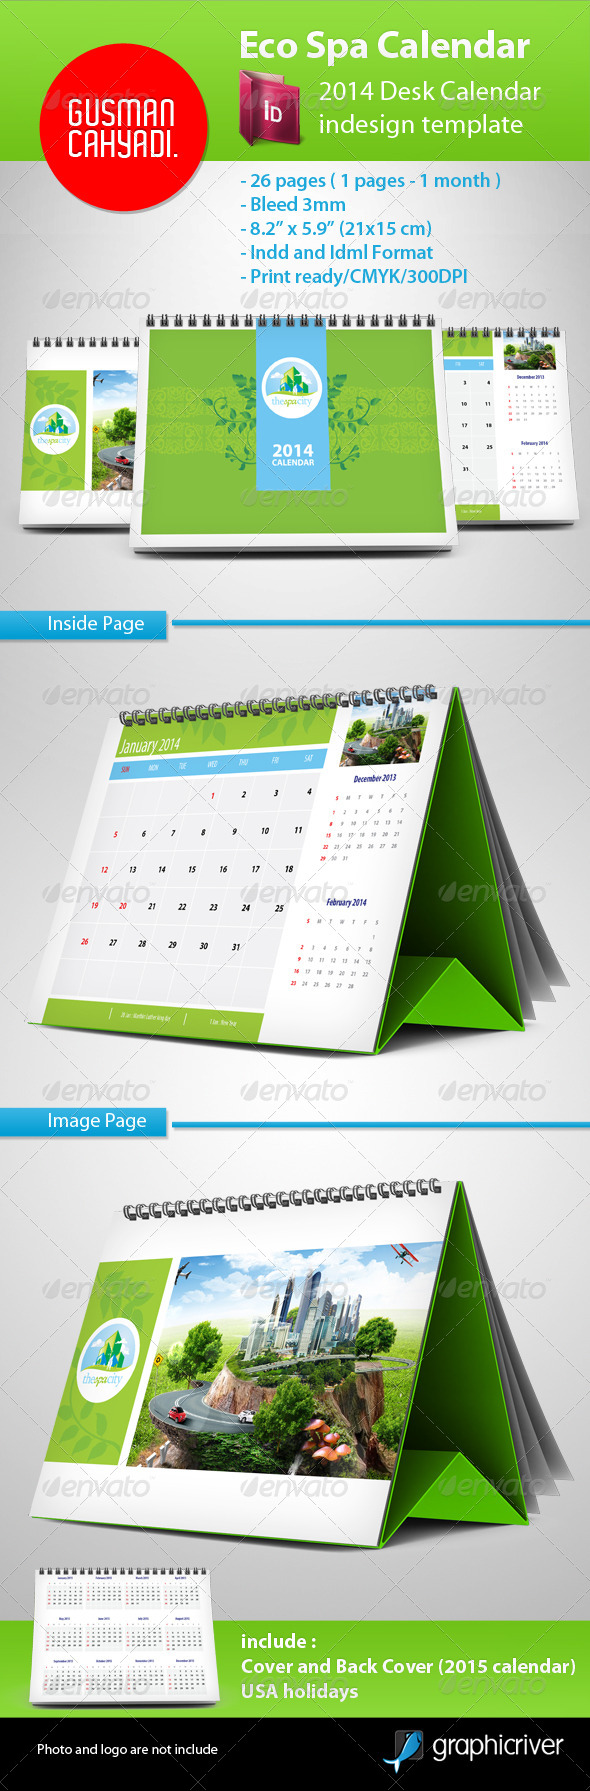 Best 2014 calendar templates premiumcoding simple clean and professional corporate calendar easy to use just put your logo and image and its ready to print and also customizable saigontimesfo